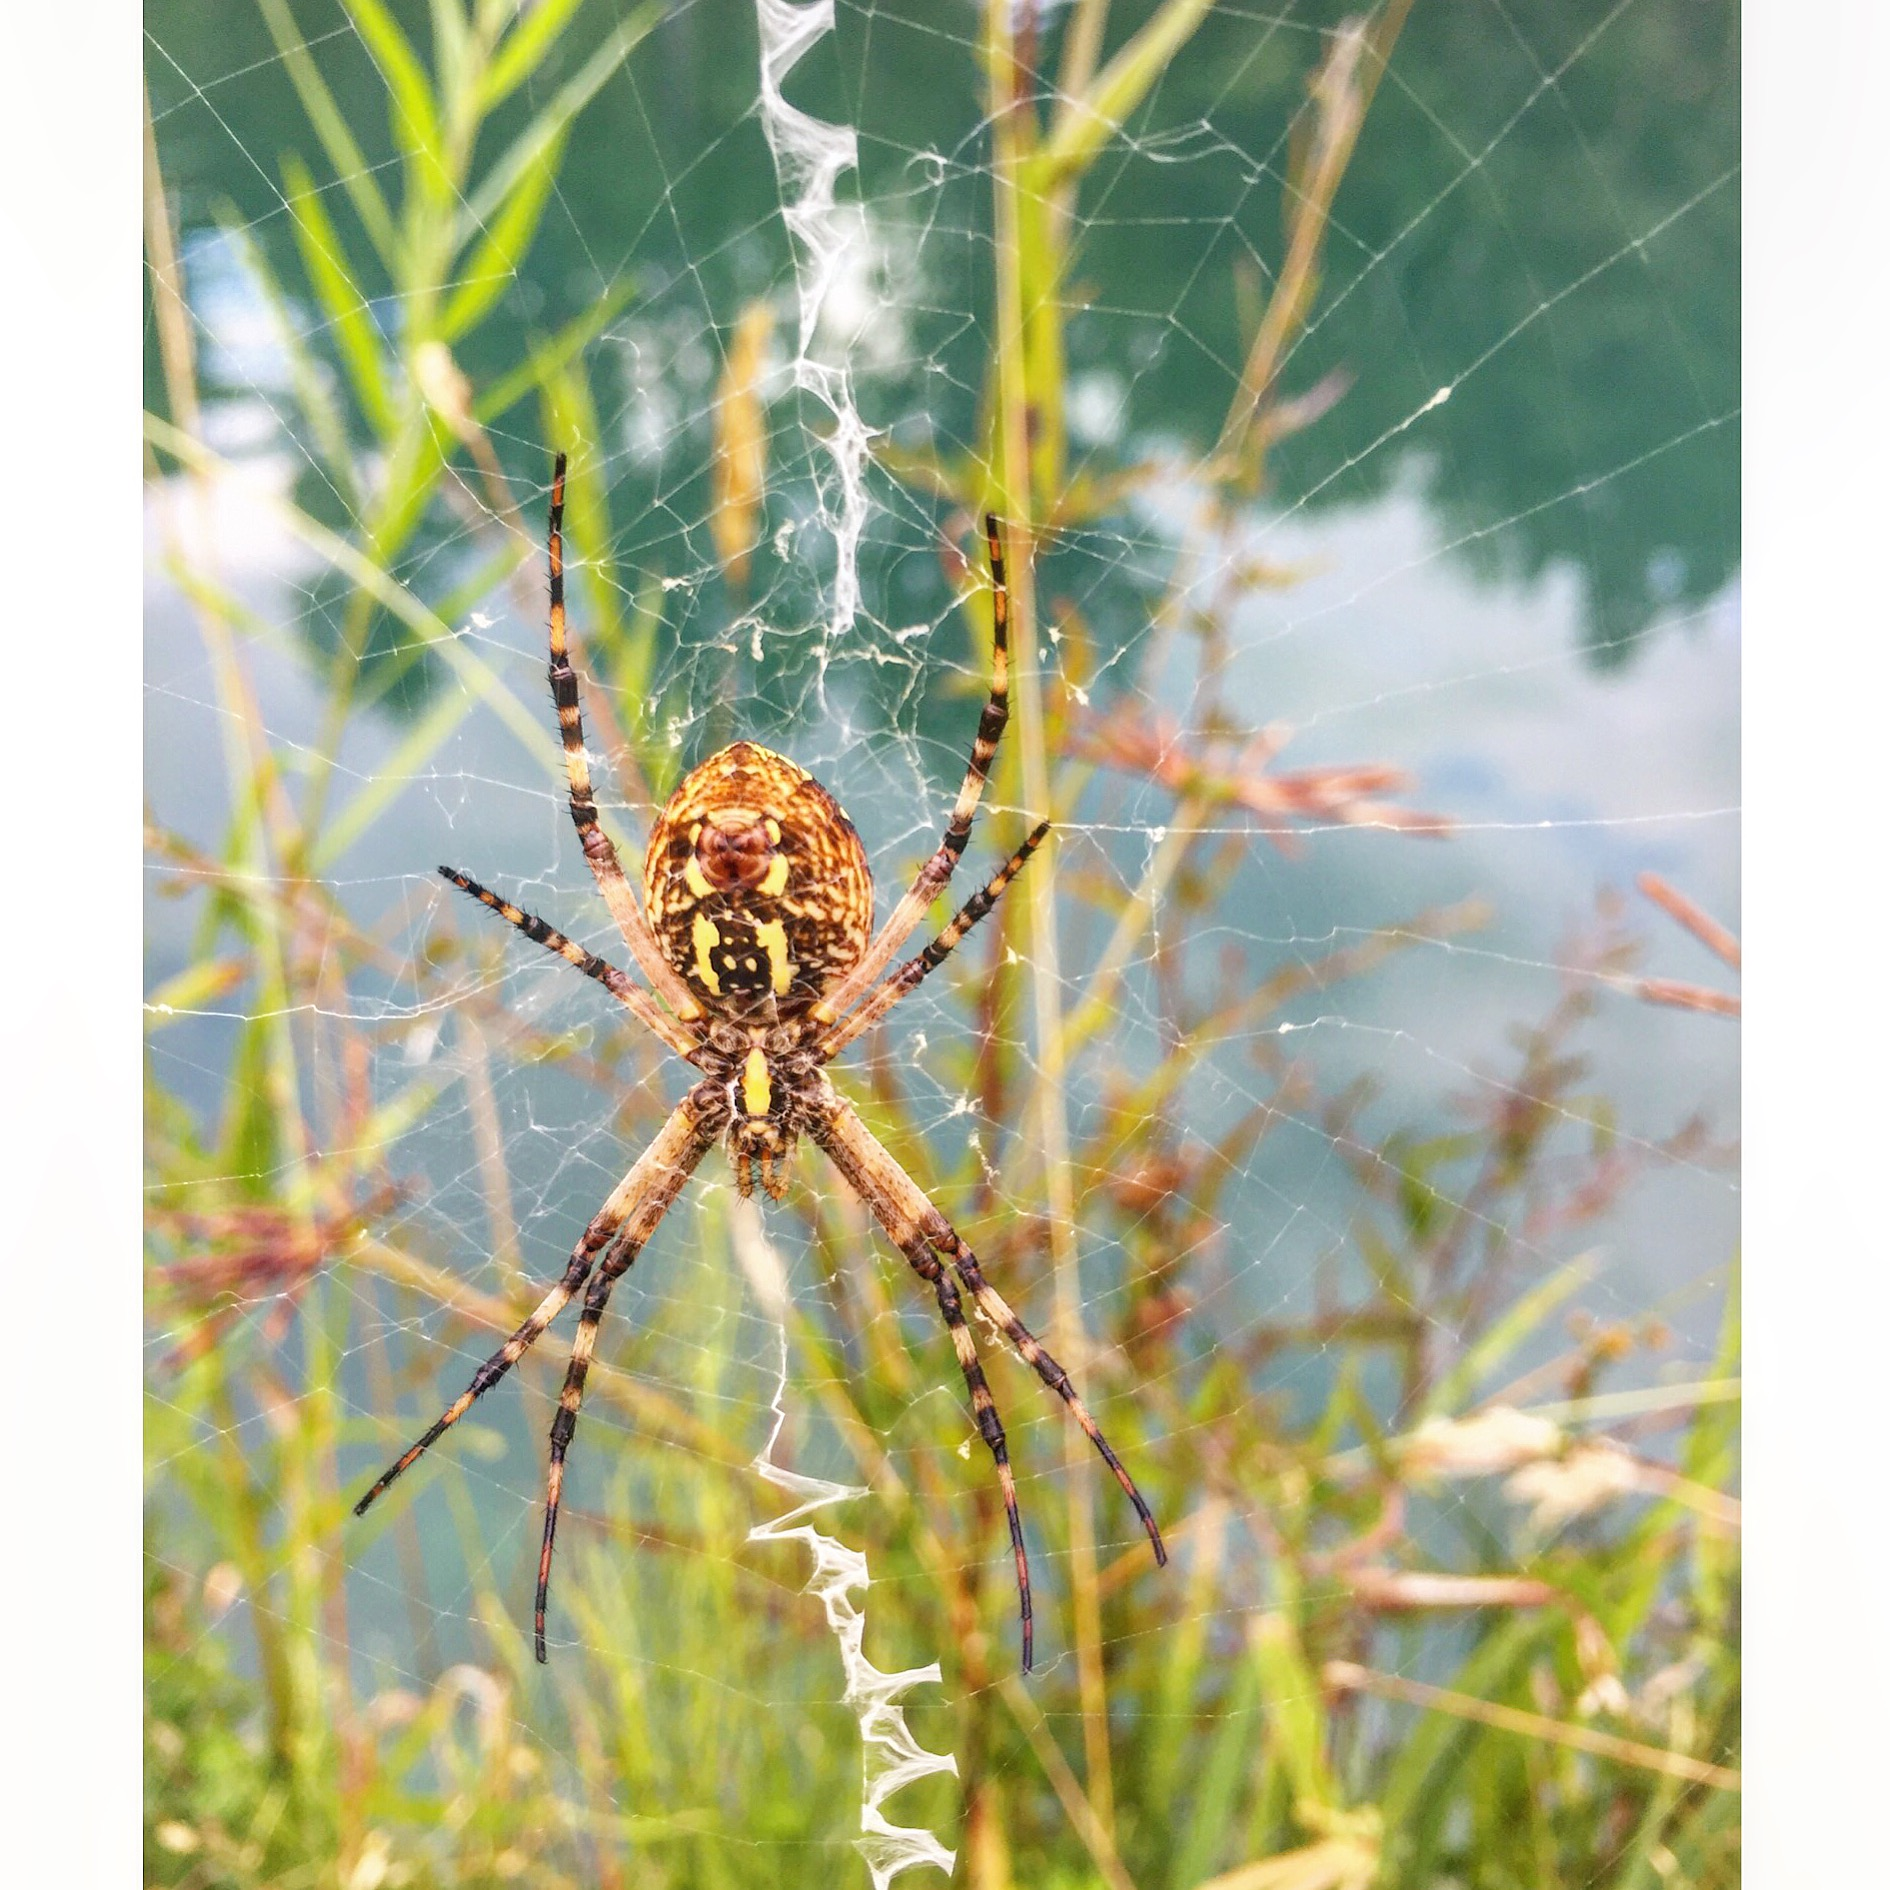 The yellow Argiope ( Argiope aurantia ) awaiting newly merging insects.